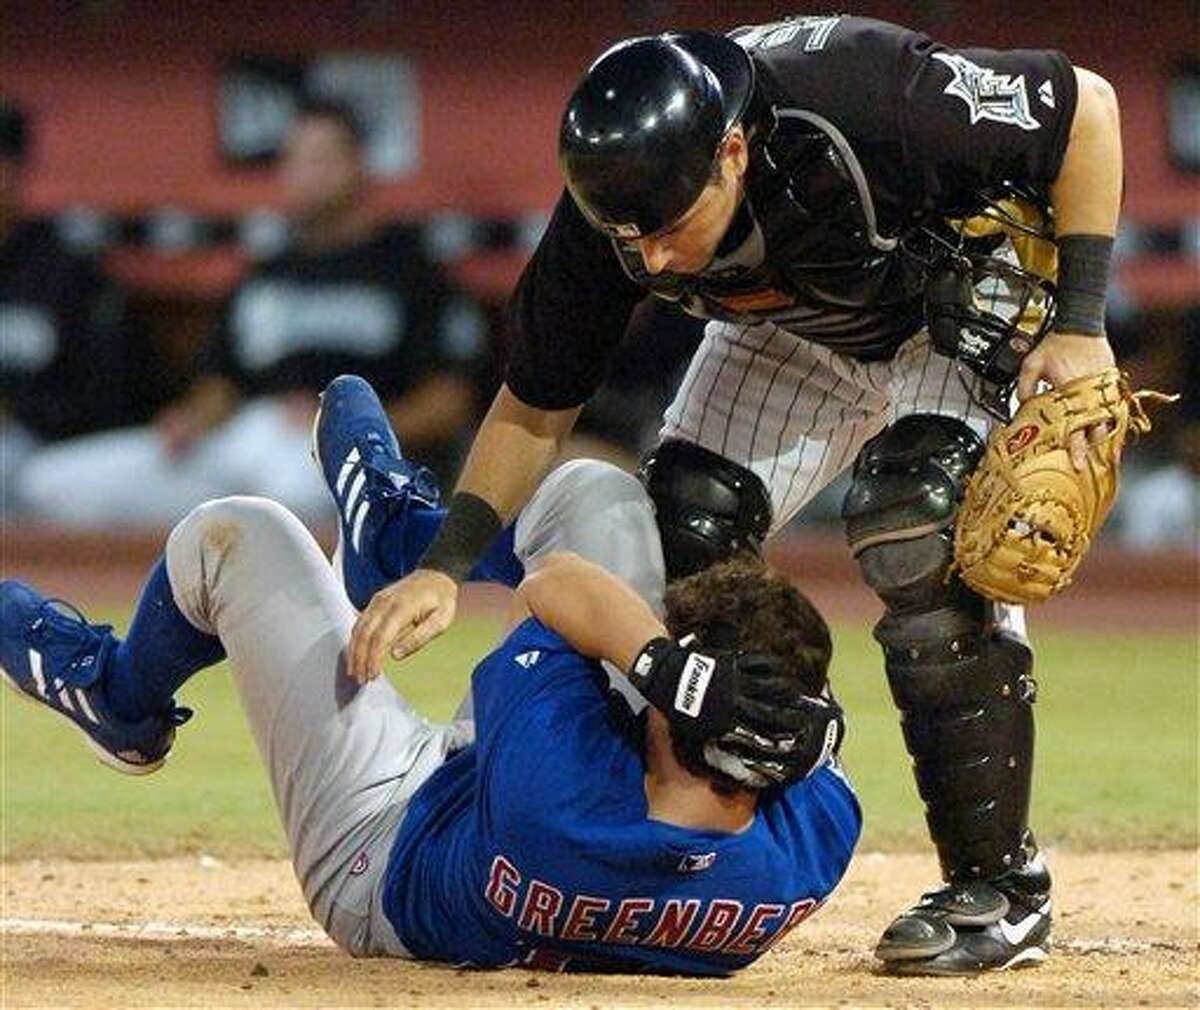 Florida Marlins catcher Paul Lo Duca rushes over to check on Chicago Cubs rookie Adam Greenberg of Guilford after Greenberg was hit in the helmet by the first pitch he faced in the major leagues, from Florida Marlins relief pitcher Valerio Do Los Santos during the ninth inning, July 9, 2005, in Miami. (AP Photo/Steve Mitchell)